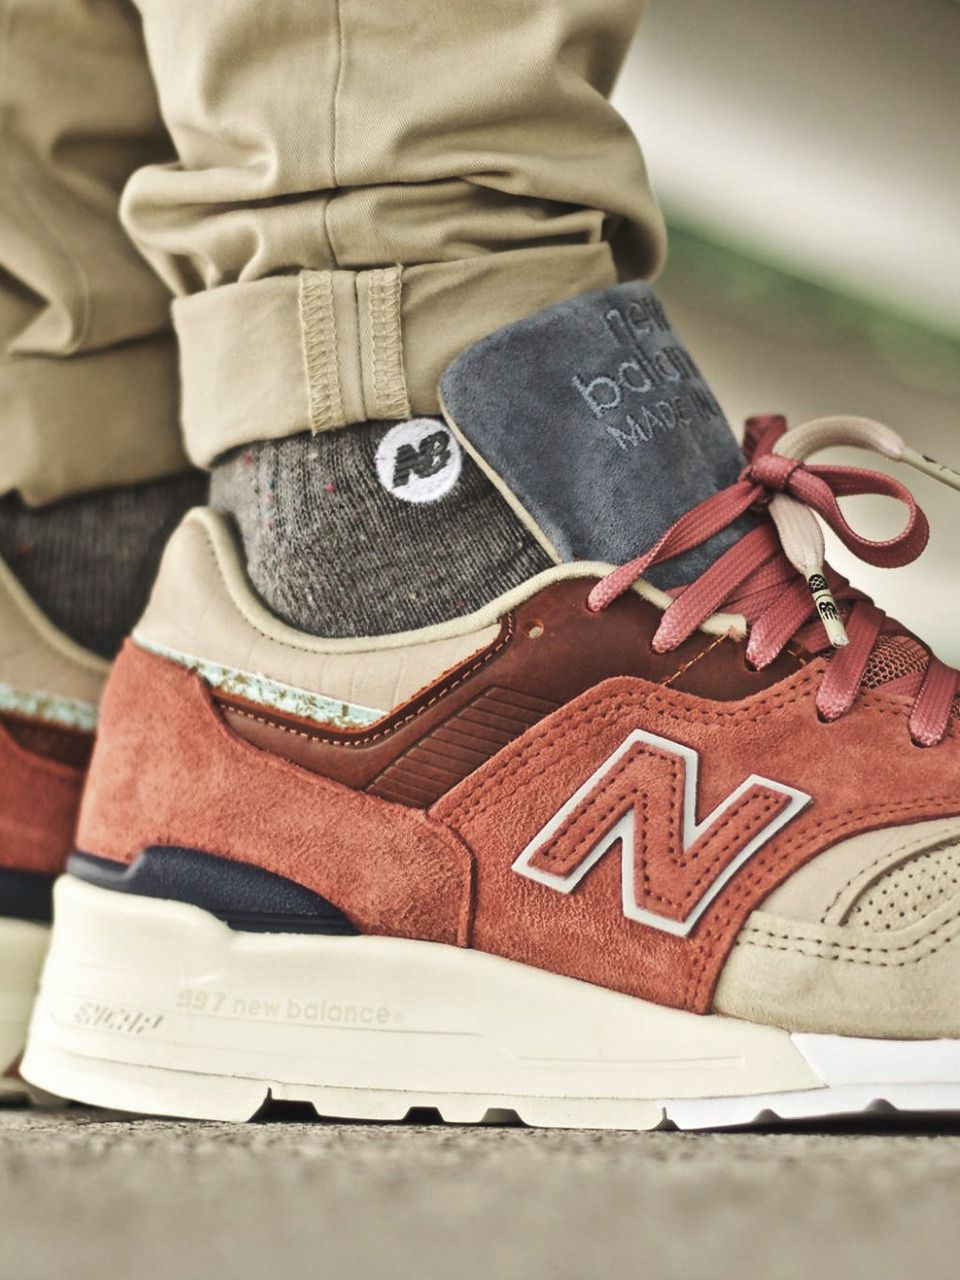 premium selection 38f30 0cfec Stance x New Balance 997 ST First of All Pack - 2017 (by ...